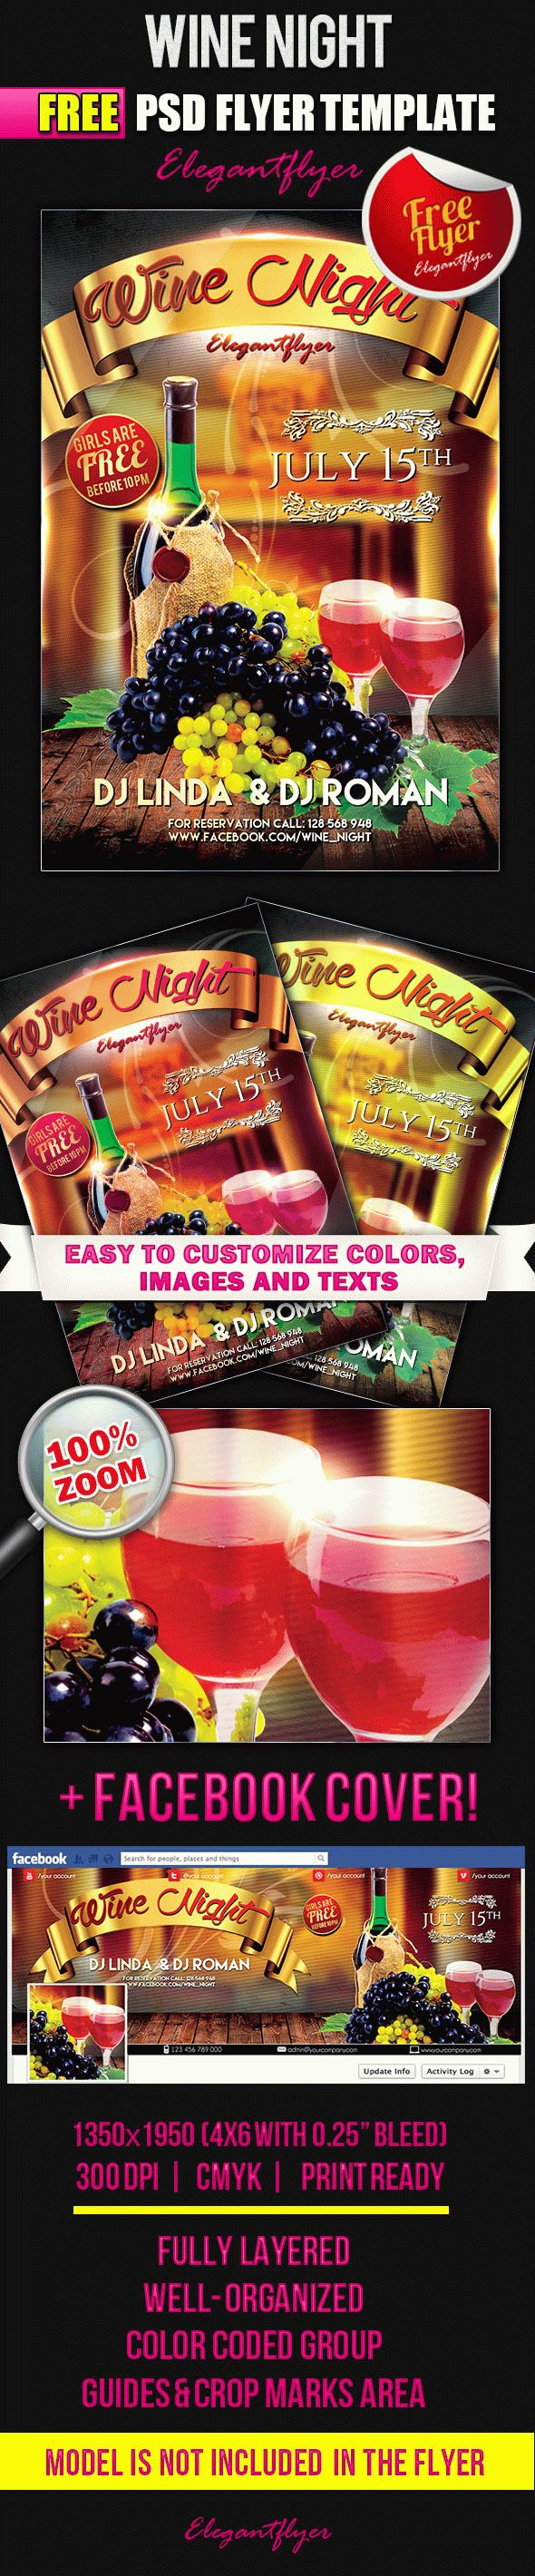 Wine Night – Free Flyer PSD Template + Facebook Cover